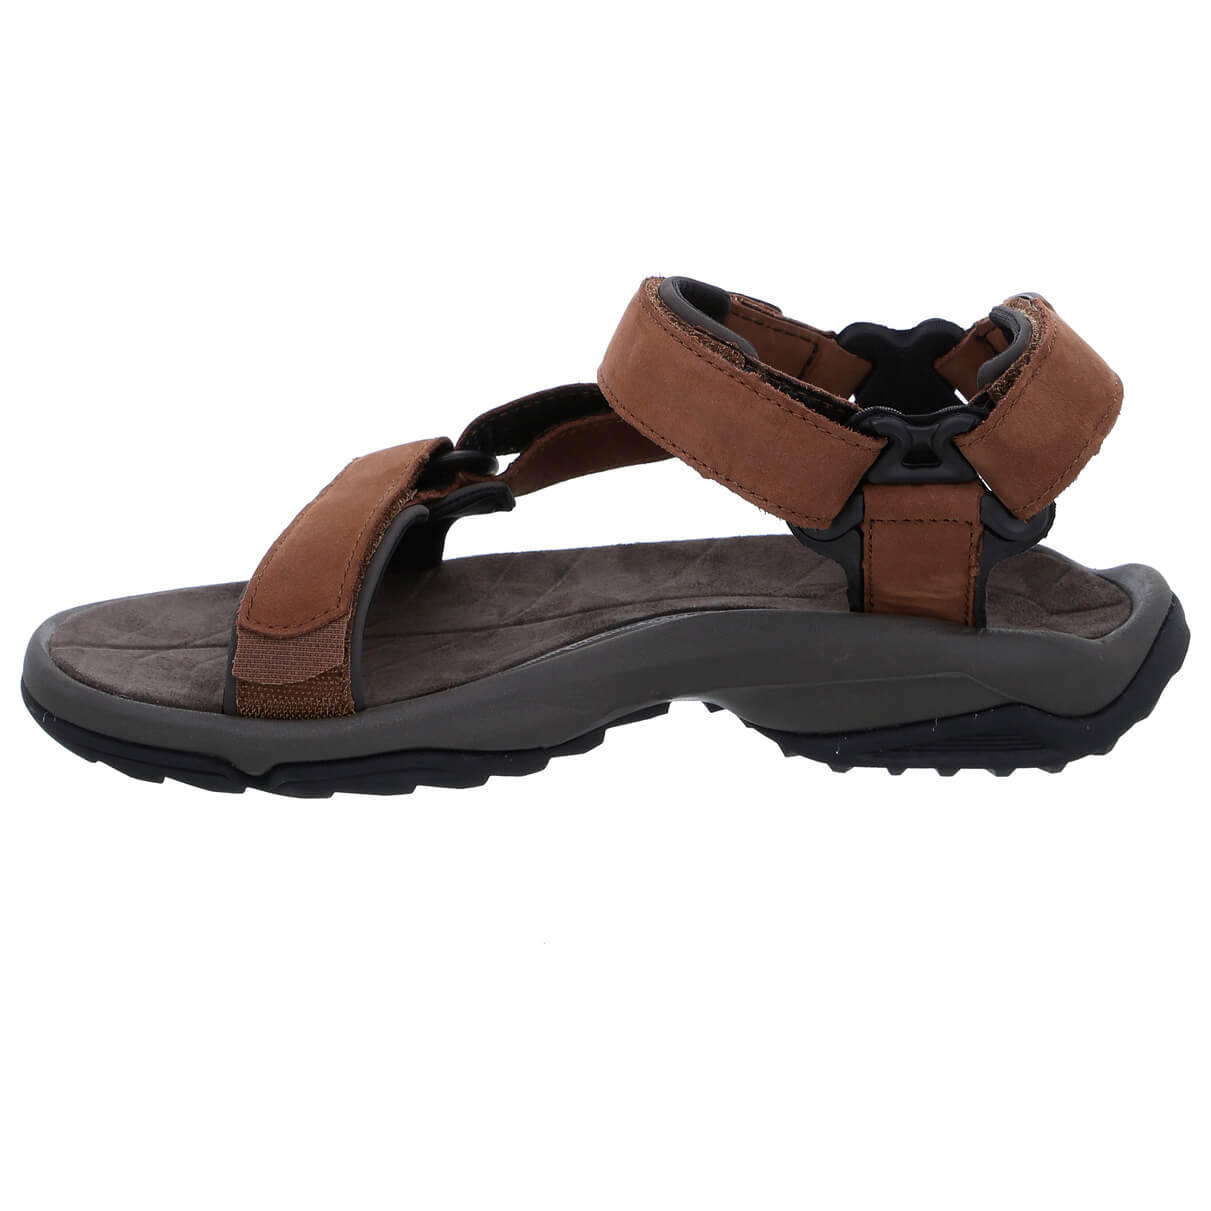 1b14b8a3d ... Teva - Terra Fi Lite Leather - Sandals ...